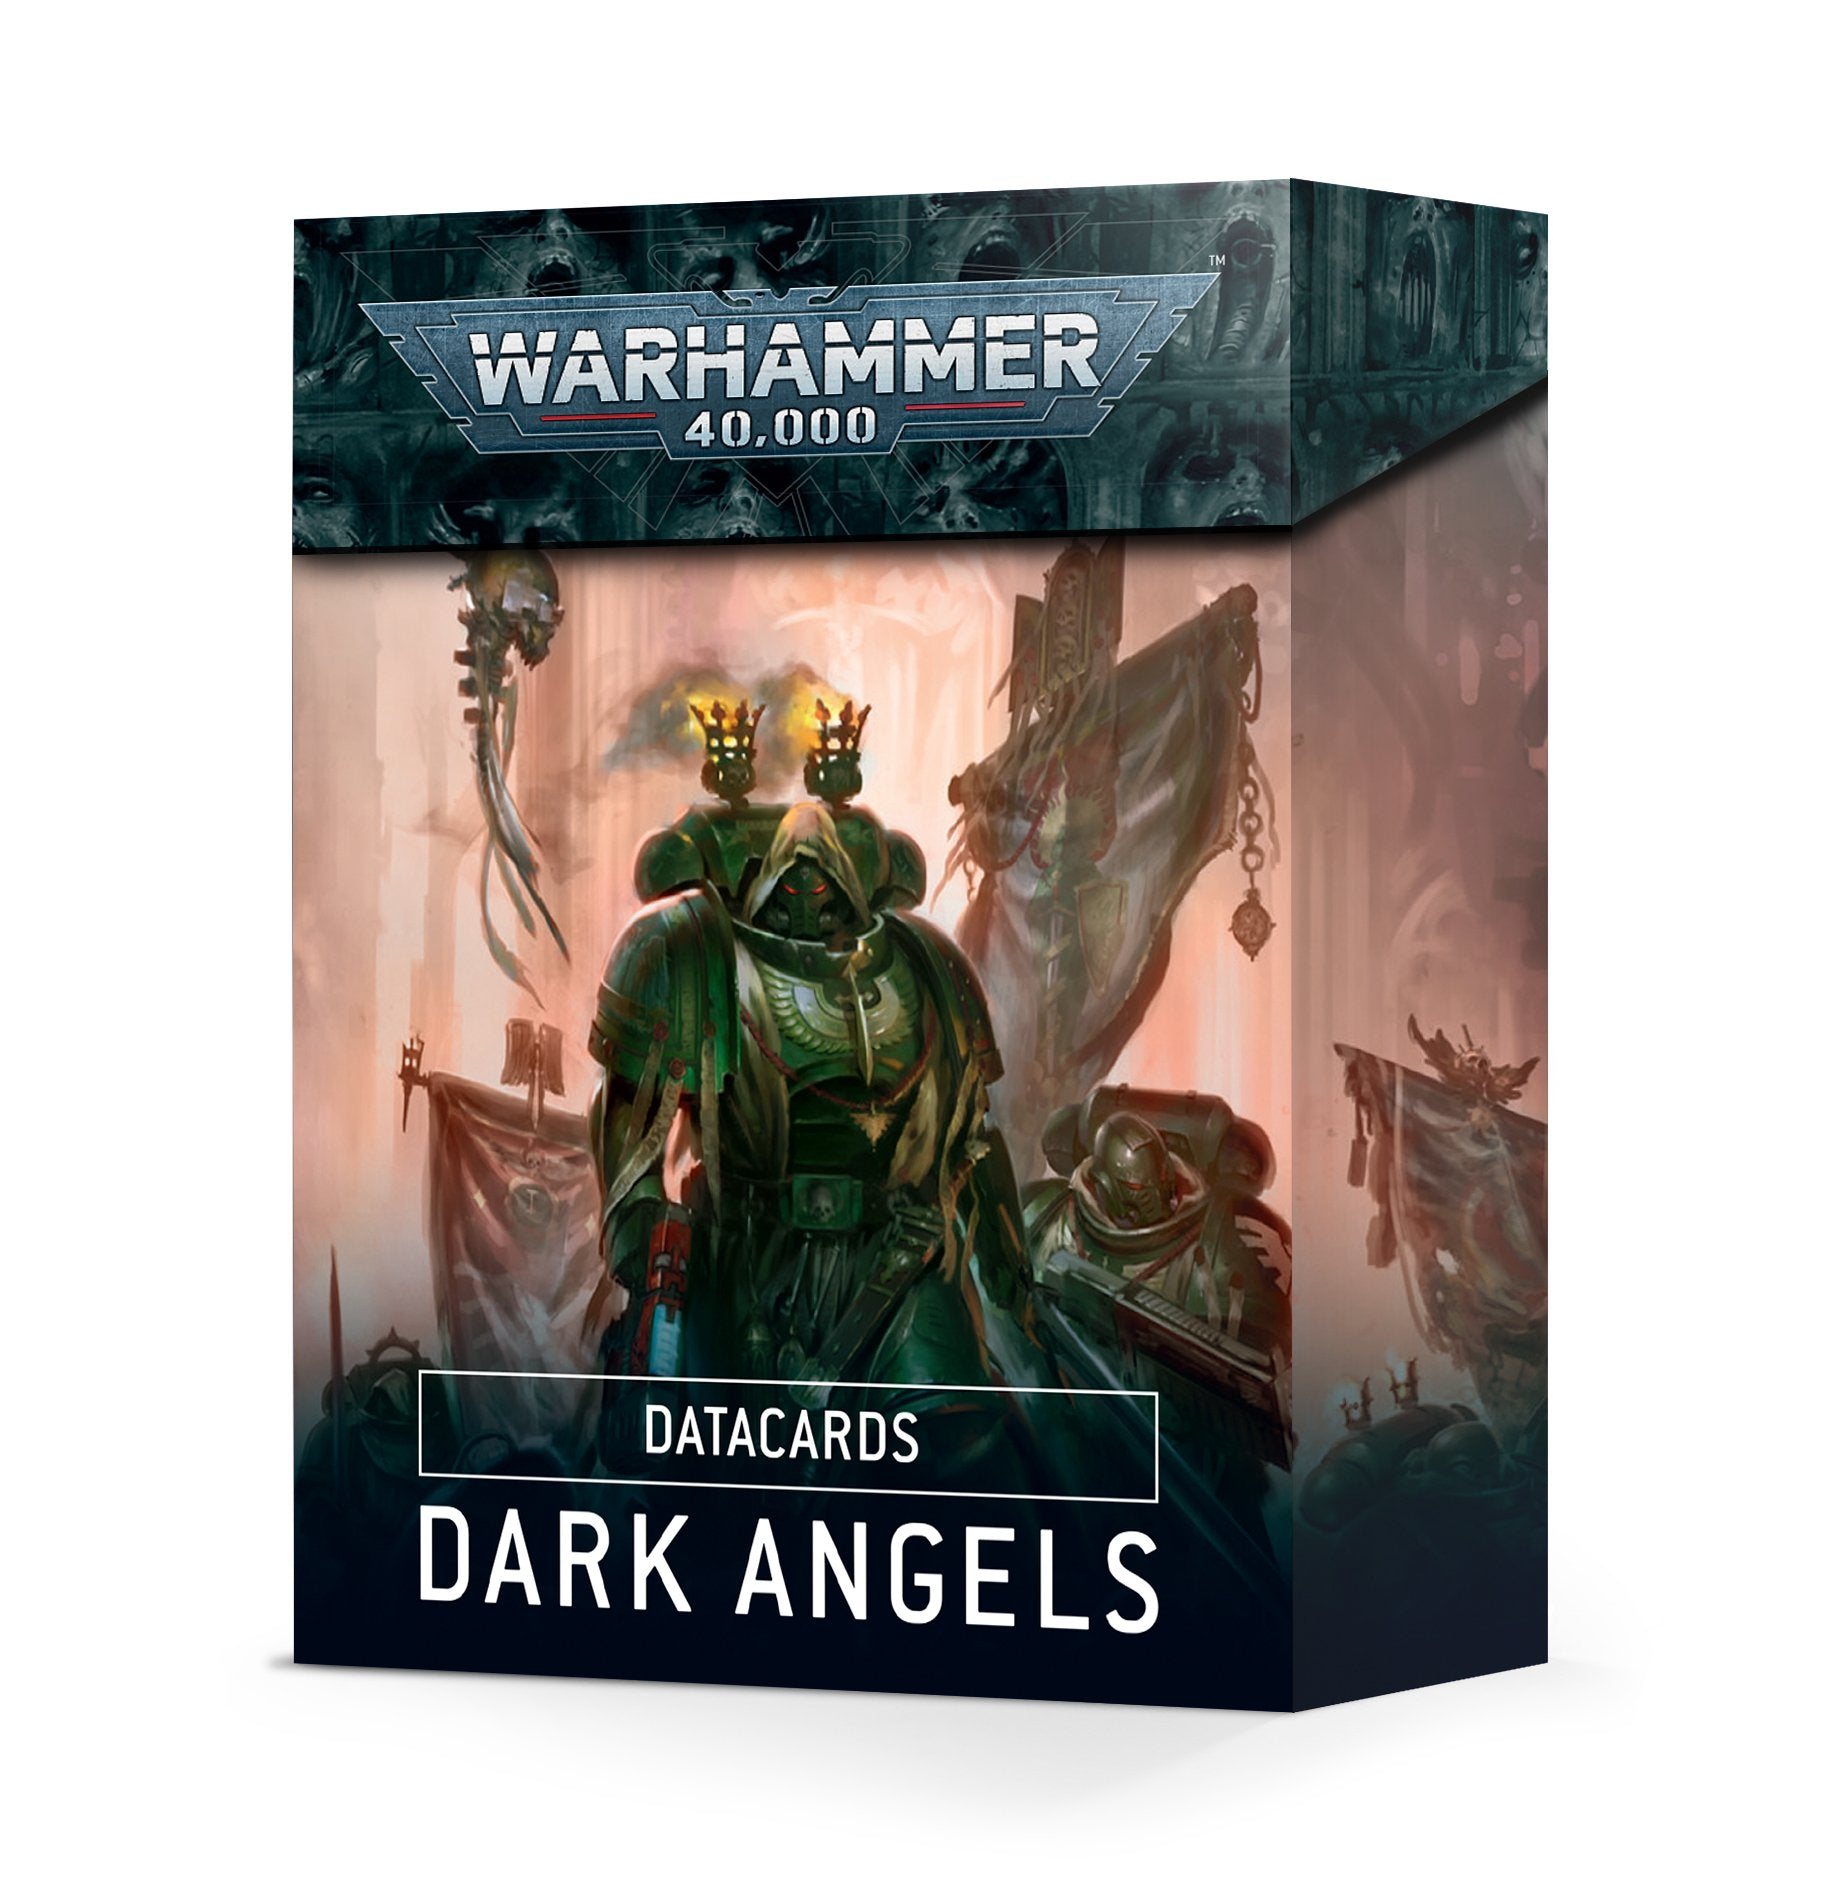 Dark Angels Data Cards Warhammer 40,000